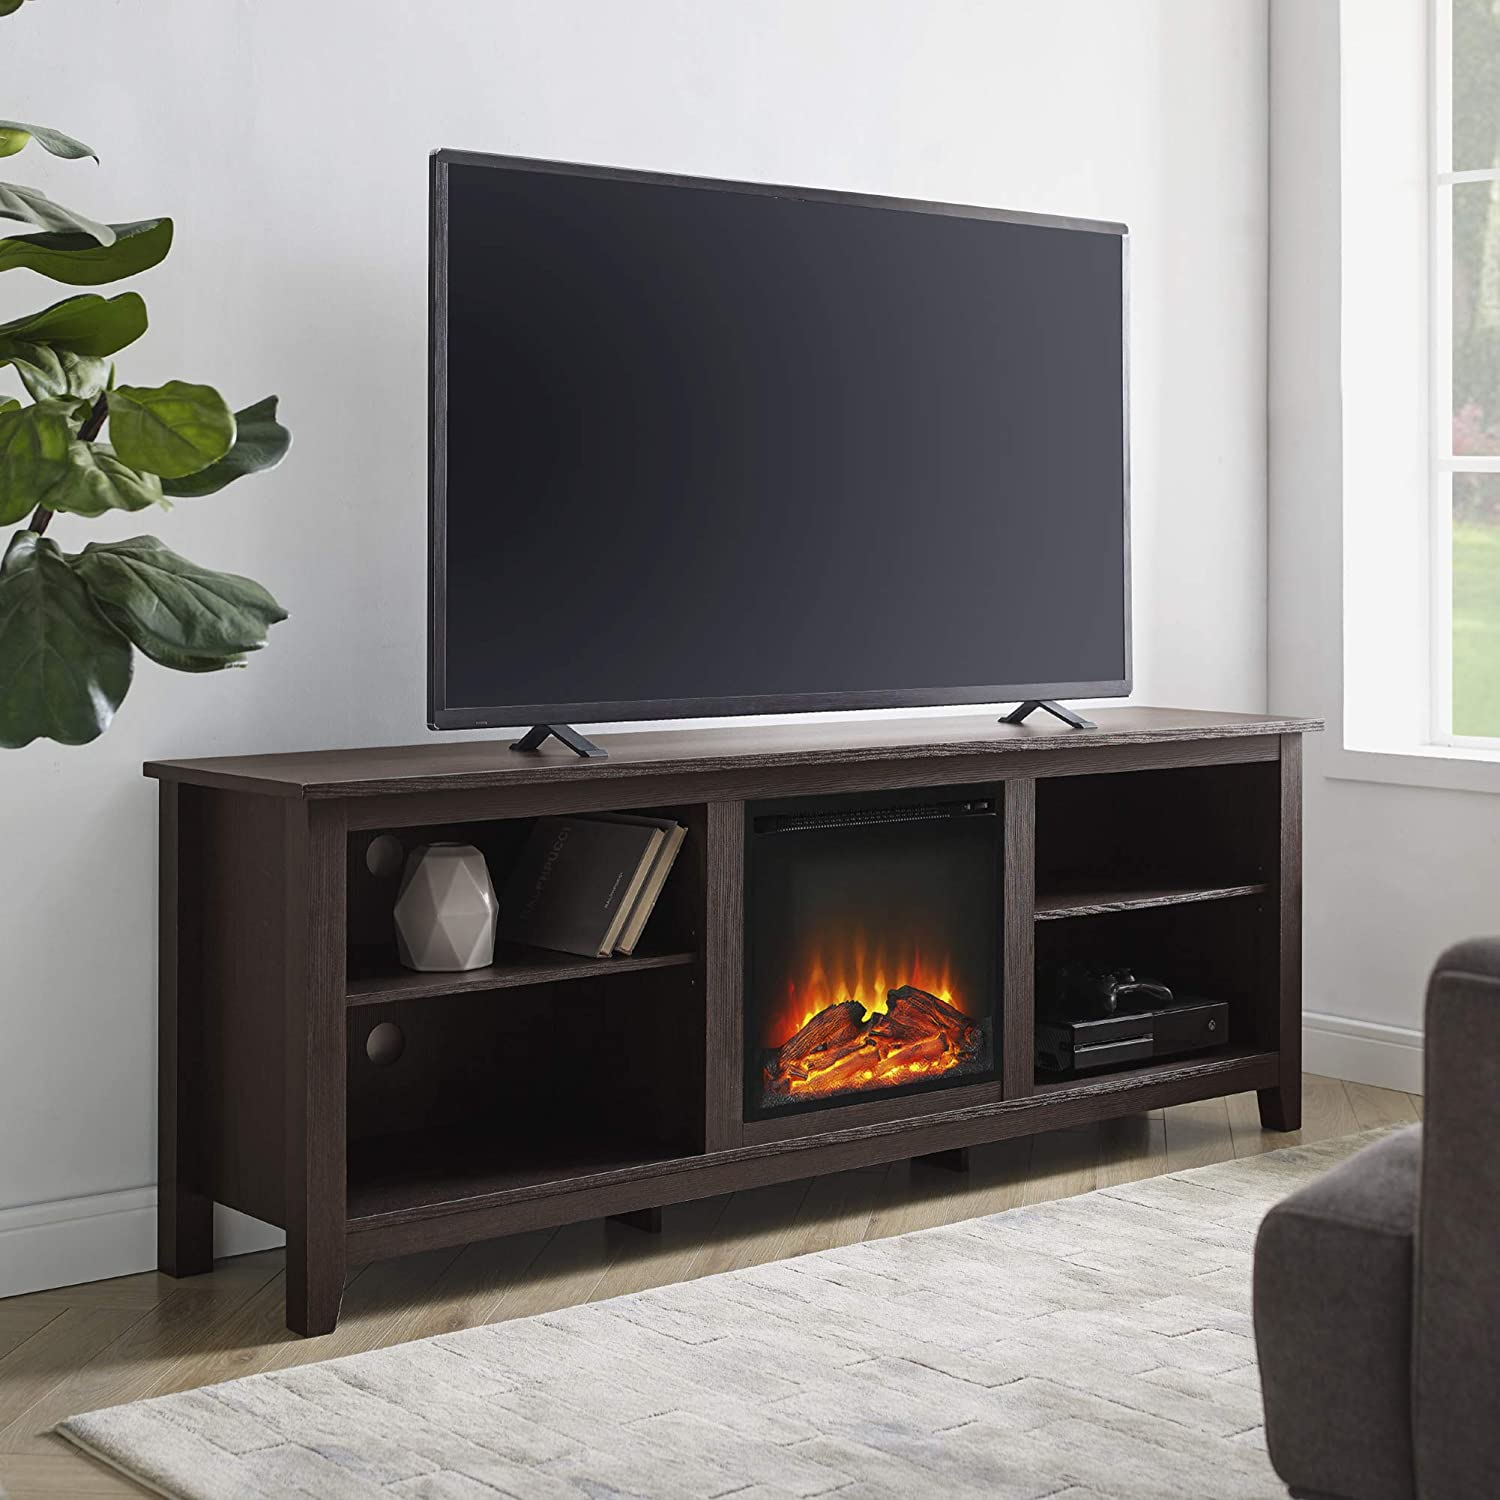 We Furniture 70 Espresso Wood Fireplace Modern Tv Stand Console For Flat Screen Tv S Up To 75 Entertainment Center Amazon Ca Home Kitchen